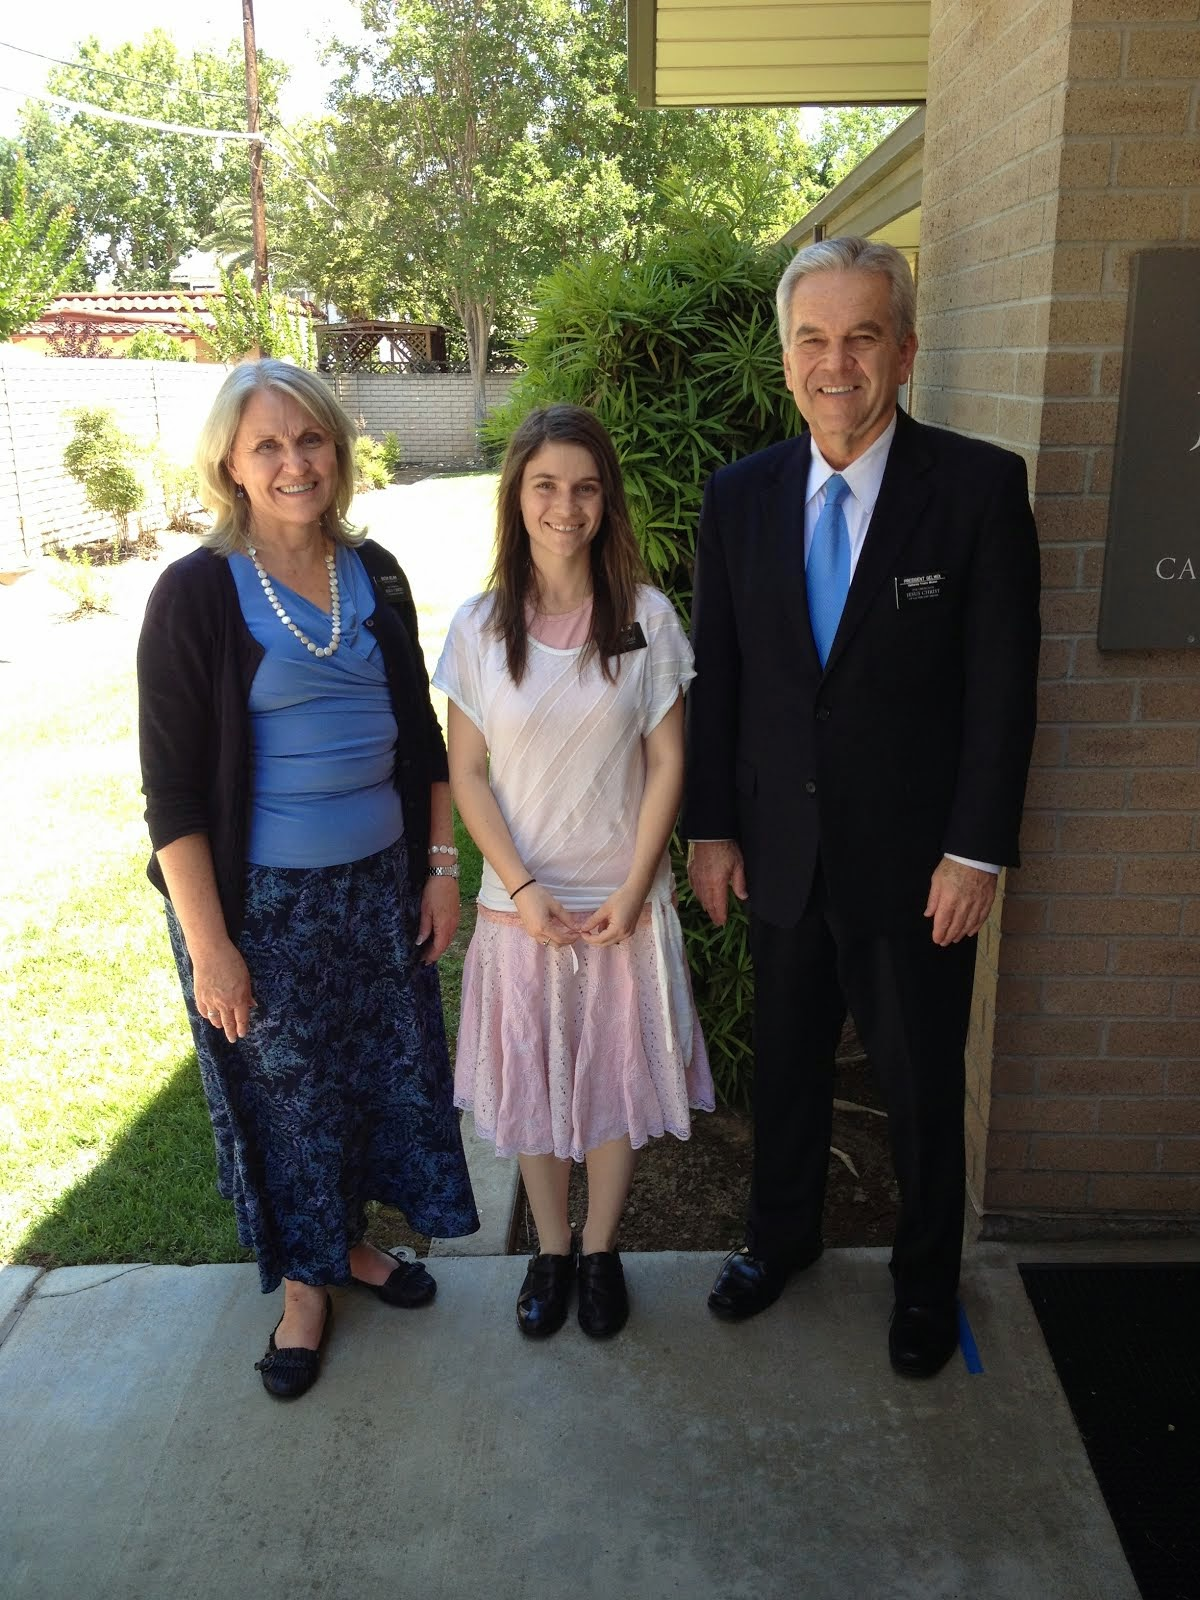 Abby with her Mission President and his wife